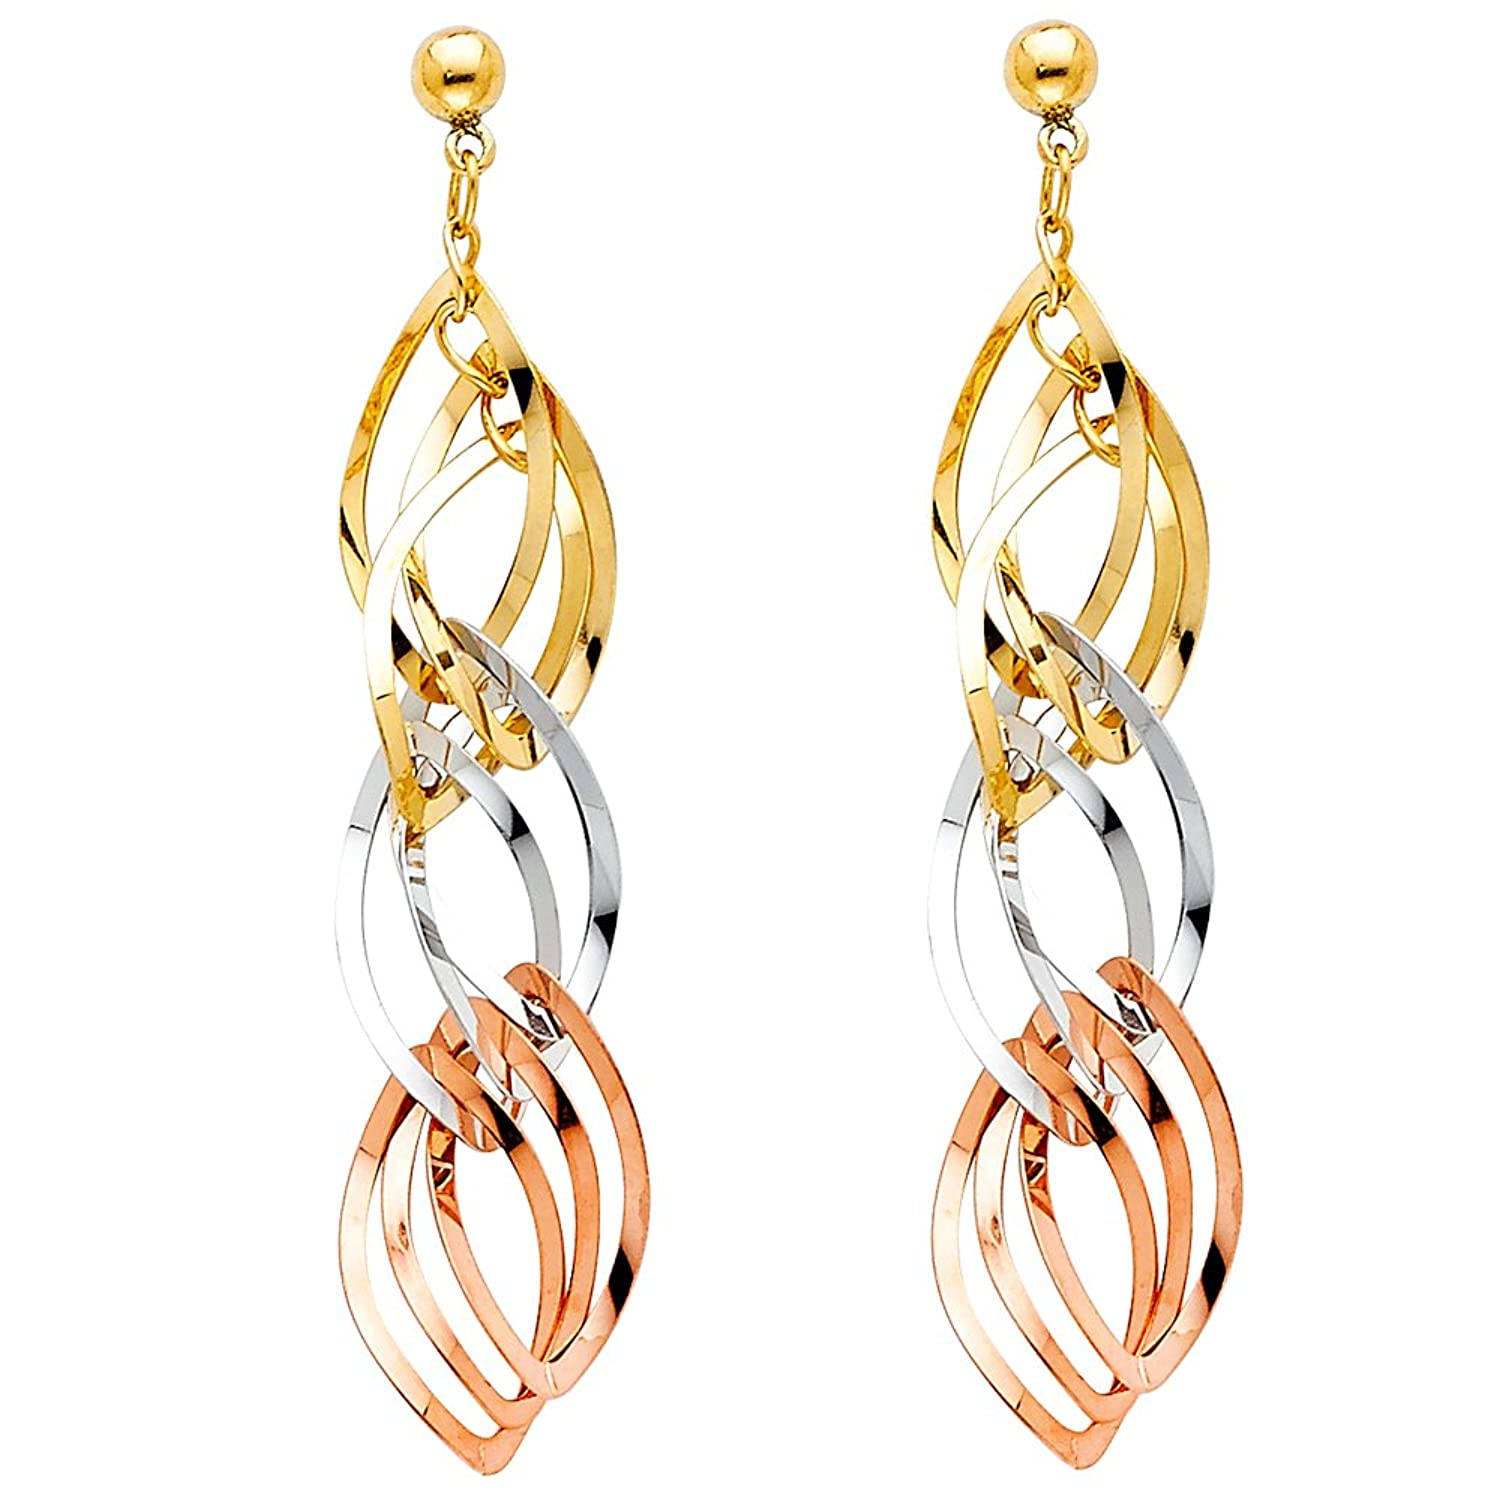 14k Tri Color Gold Twisted Dangle Earrings with Pushback (45 x 8 mm)